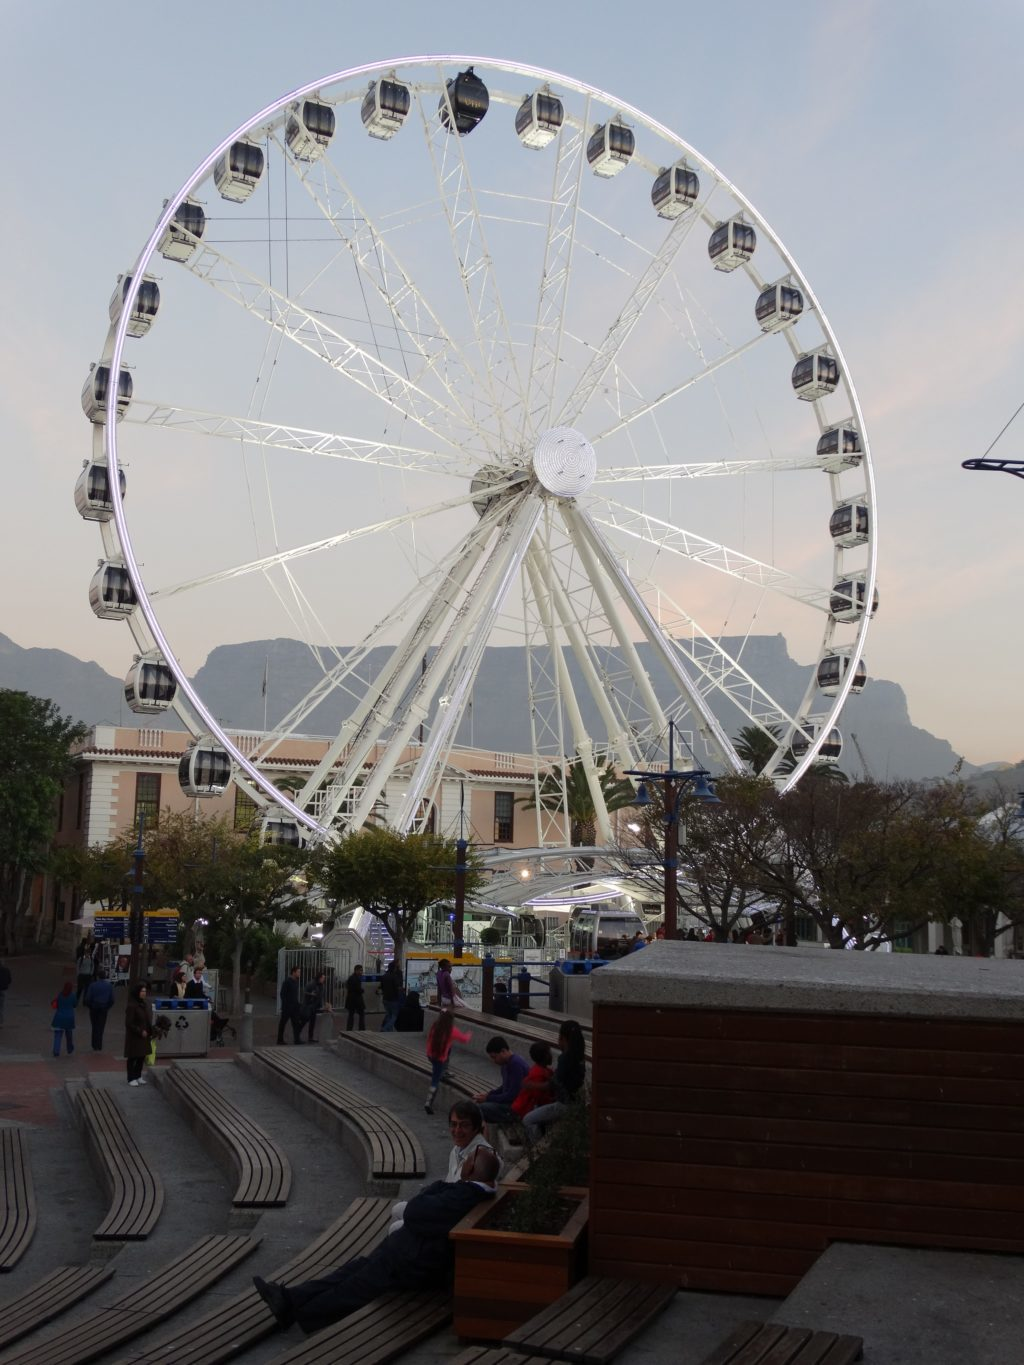 Cape Town Ferris Wheel at the Victoria and Alfred Waterfront in South Africa